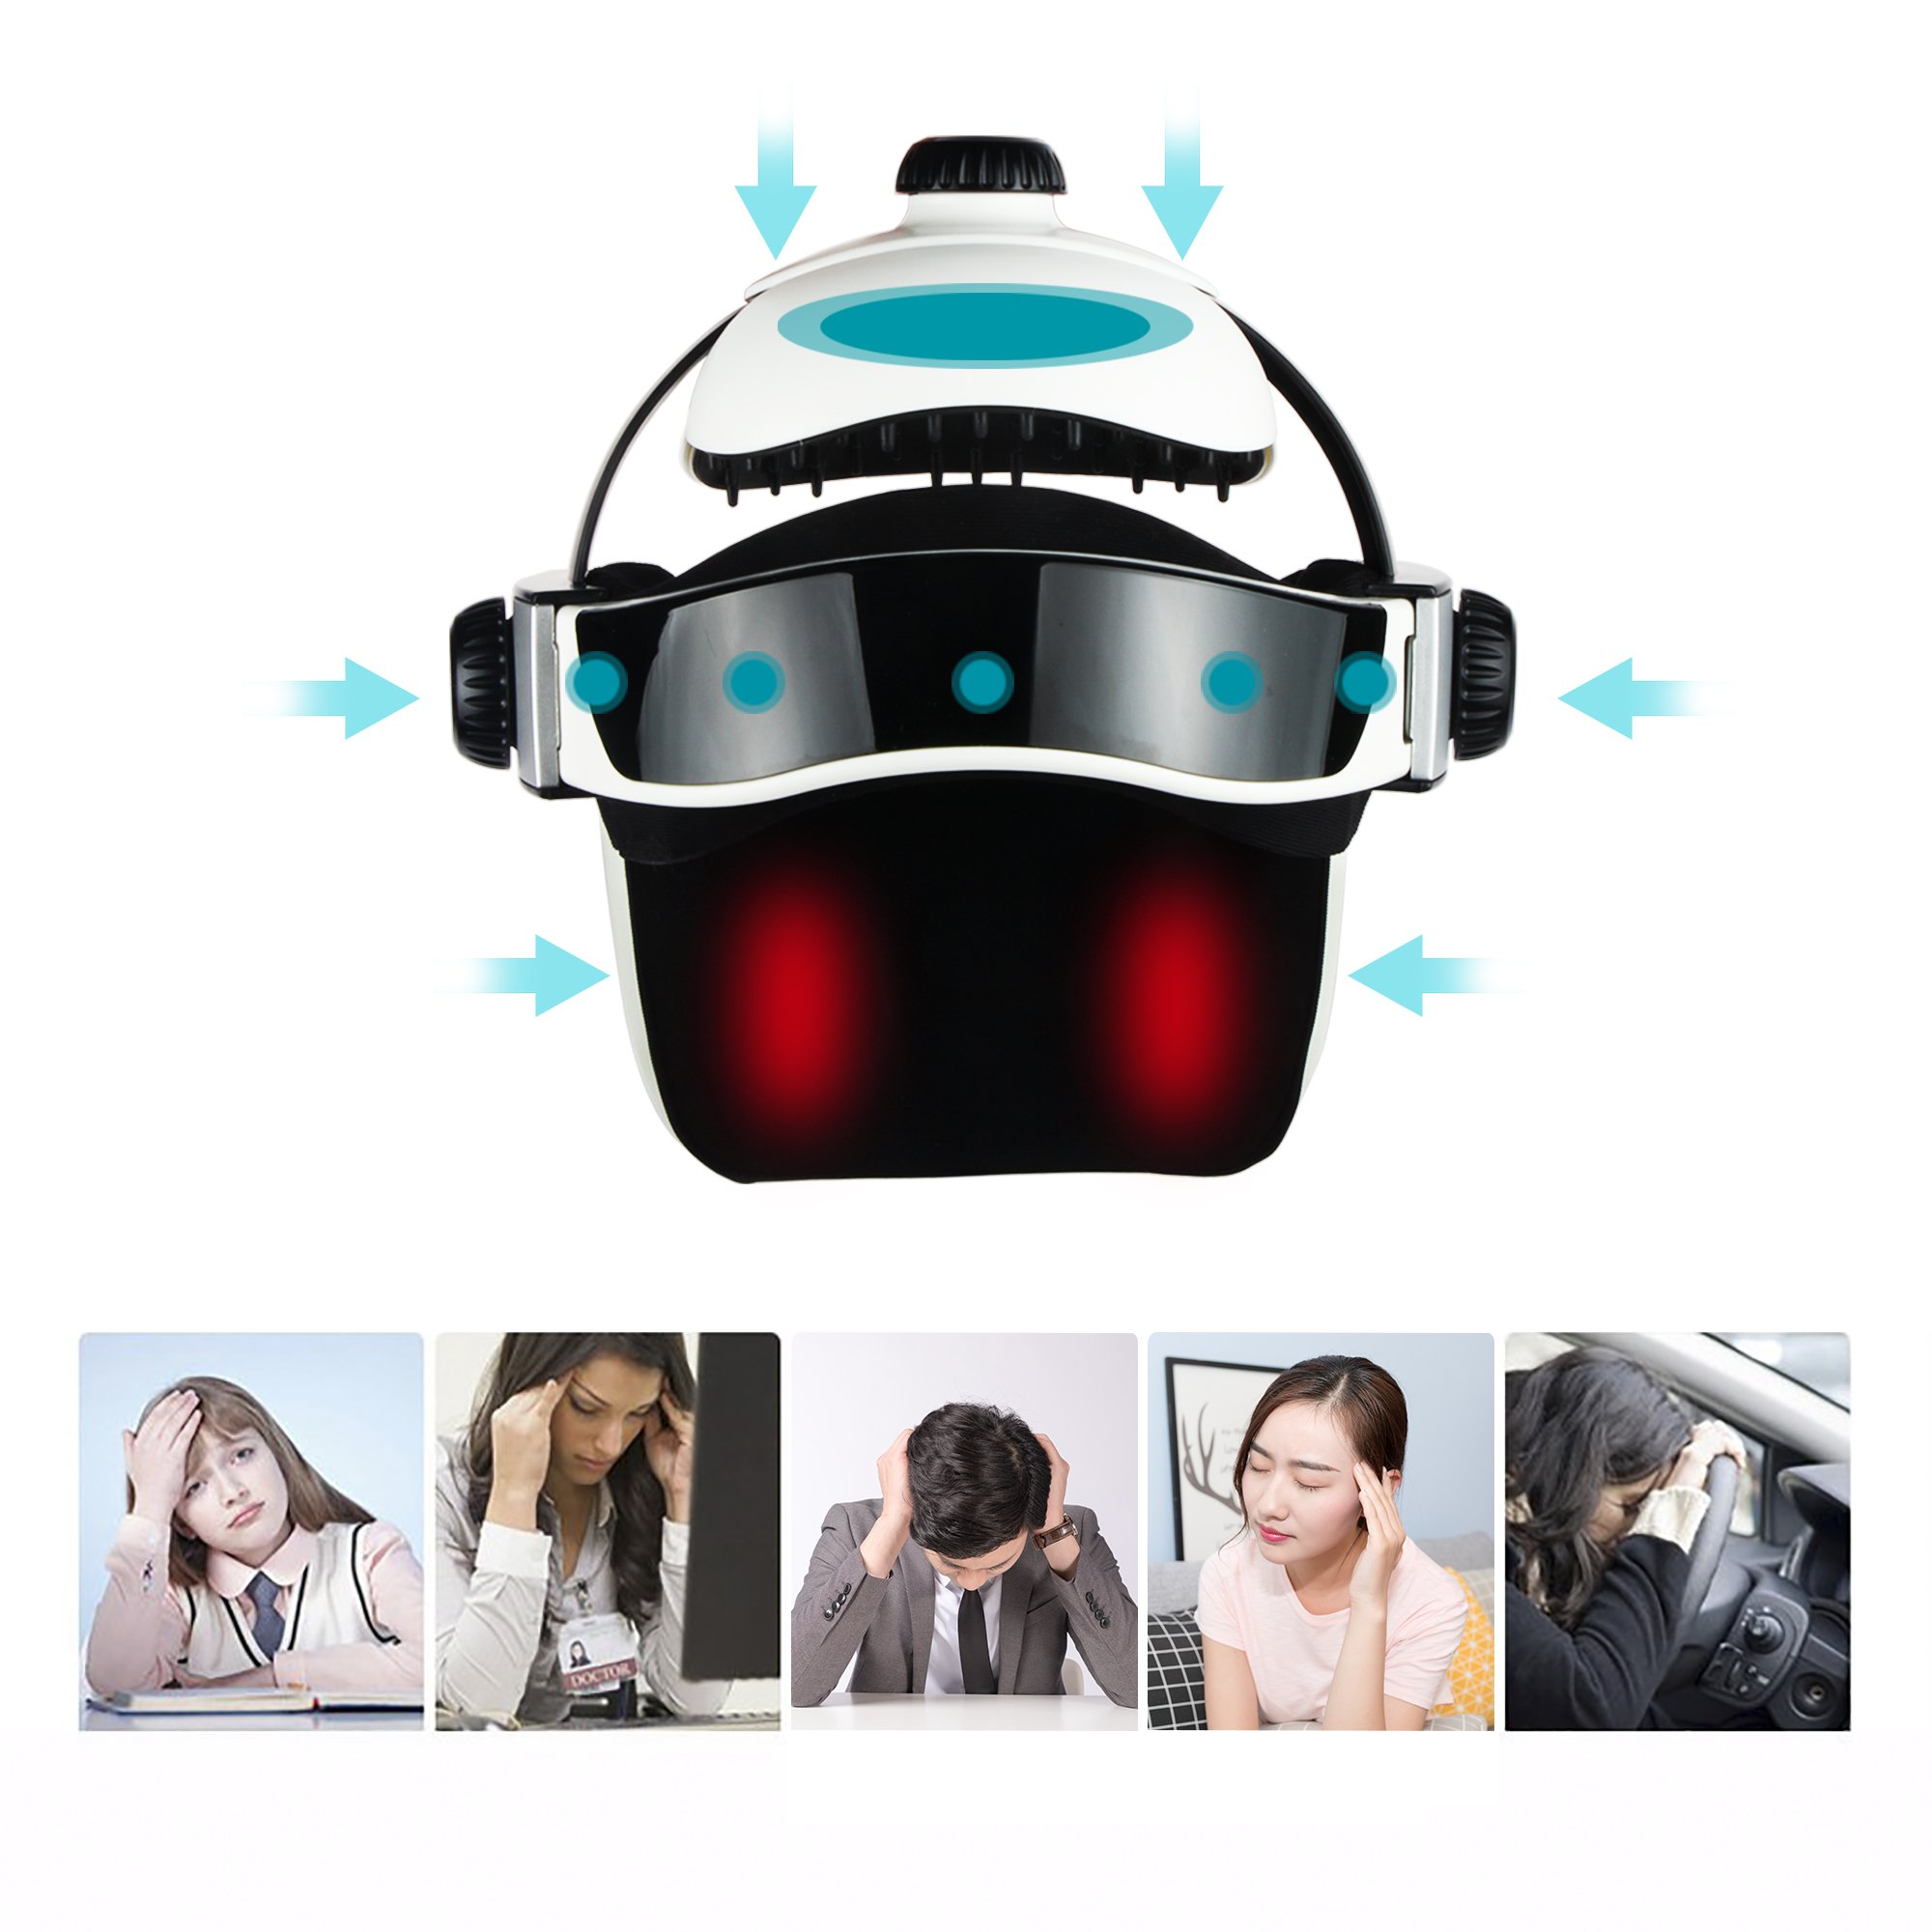 REAQER Electric Head Massager Multifunctional Massage Helmet with Soothing Music and Air Pressure to Relax and Relieve The Headache by REAQER (Image #3)